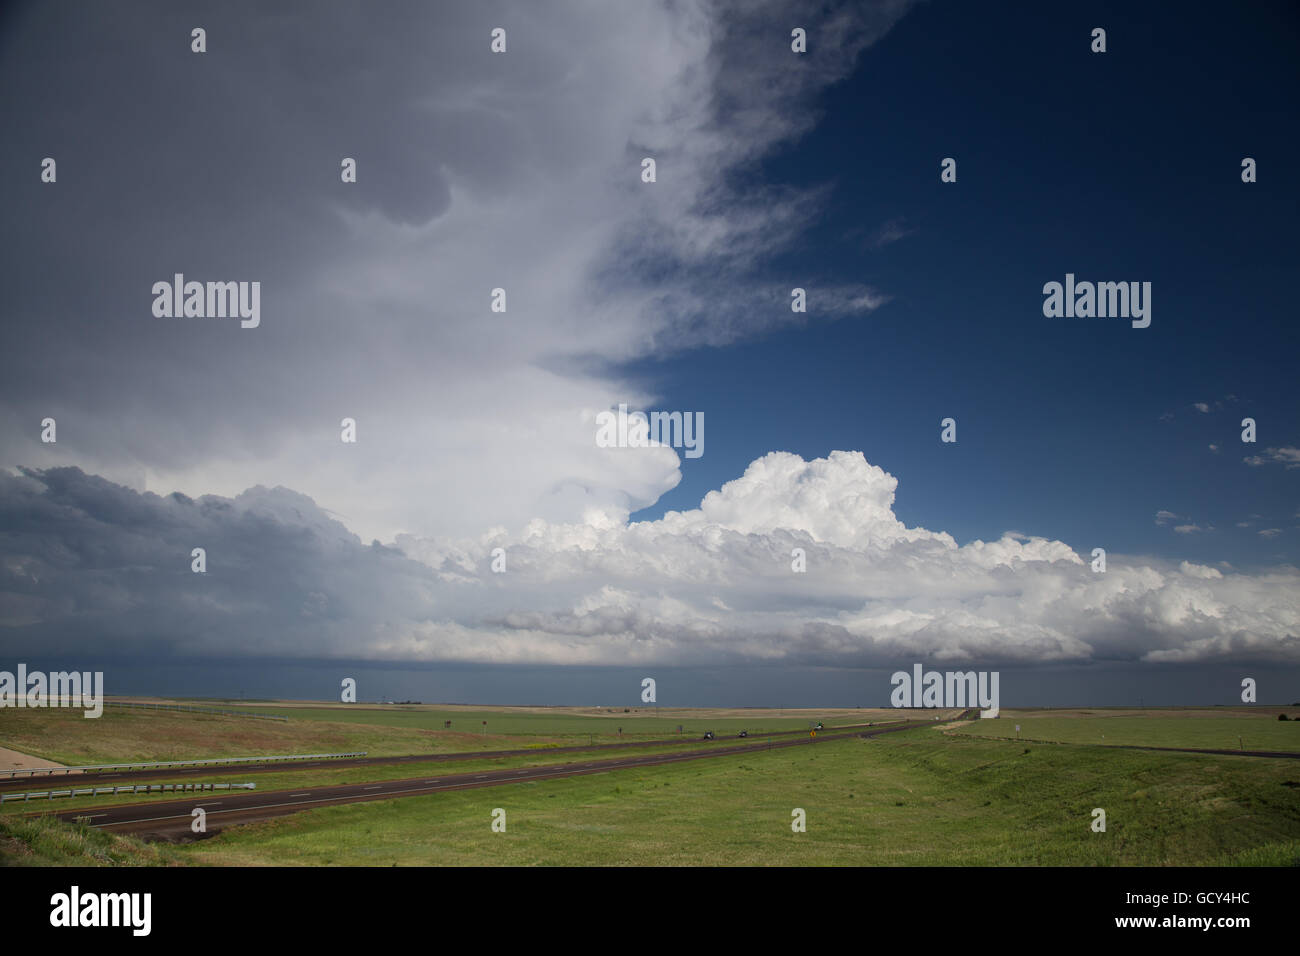 A thunderstorm over Interstate 70 near Colby, Kansas, June 1, 2014. - Stock Image